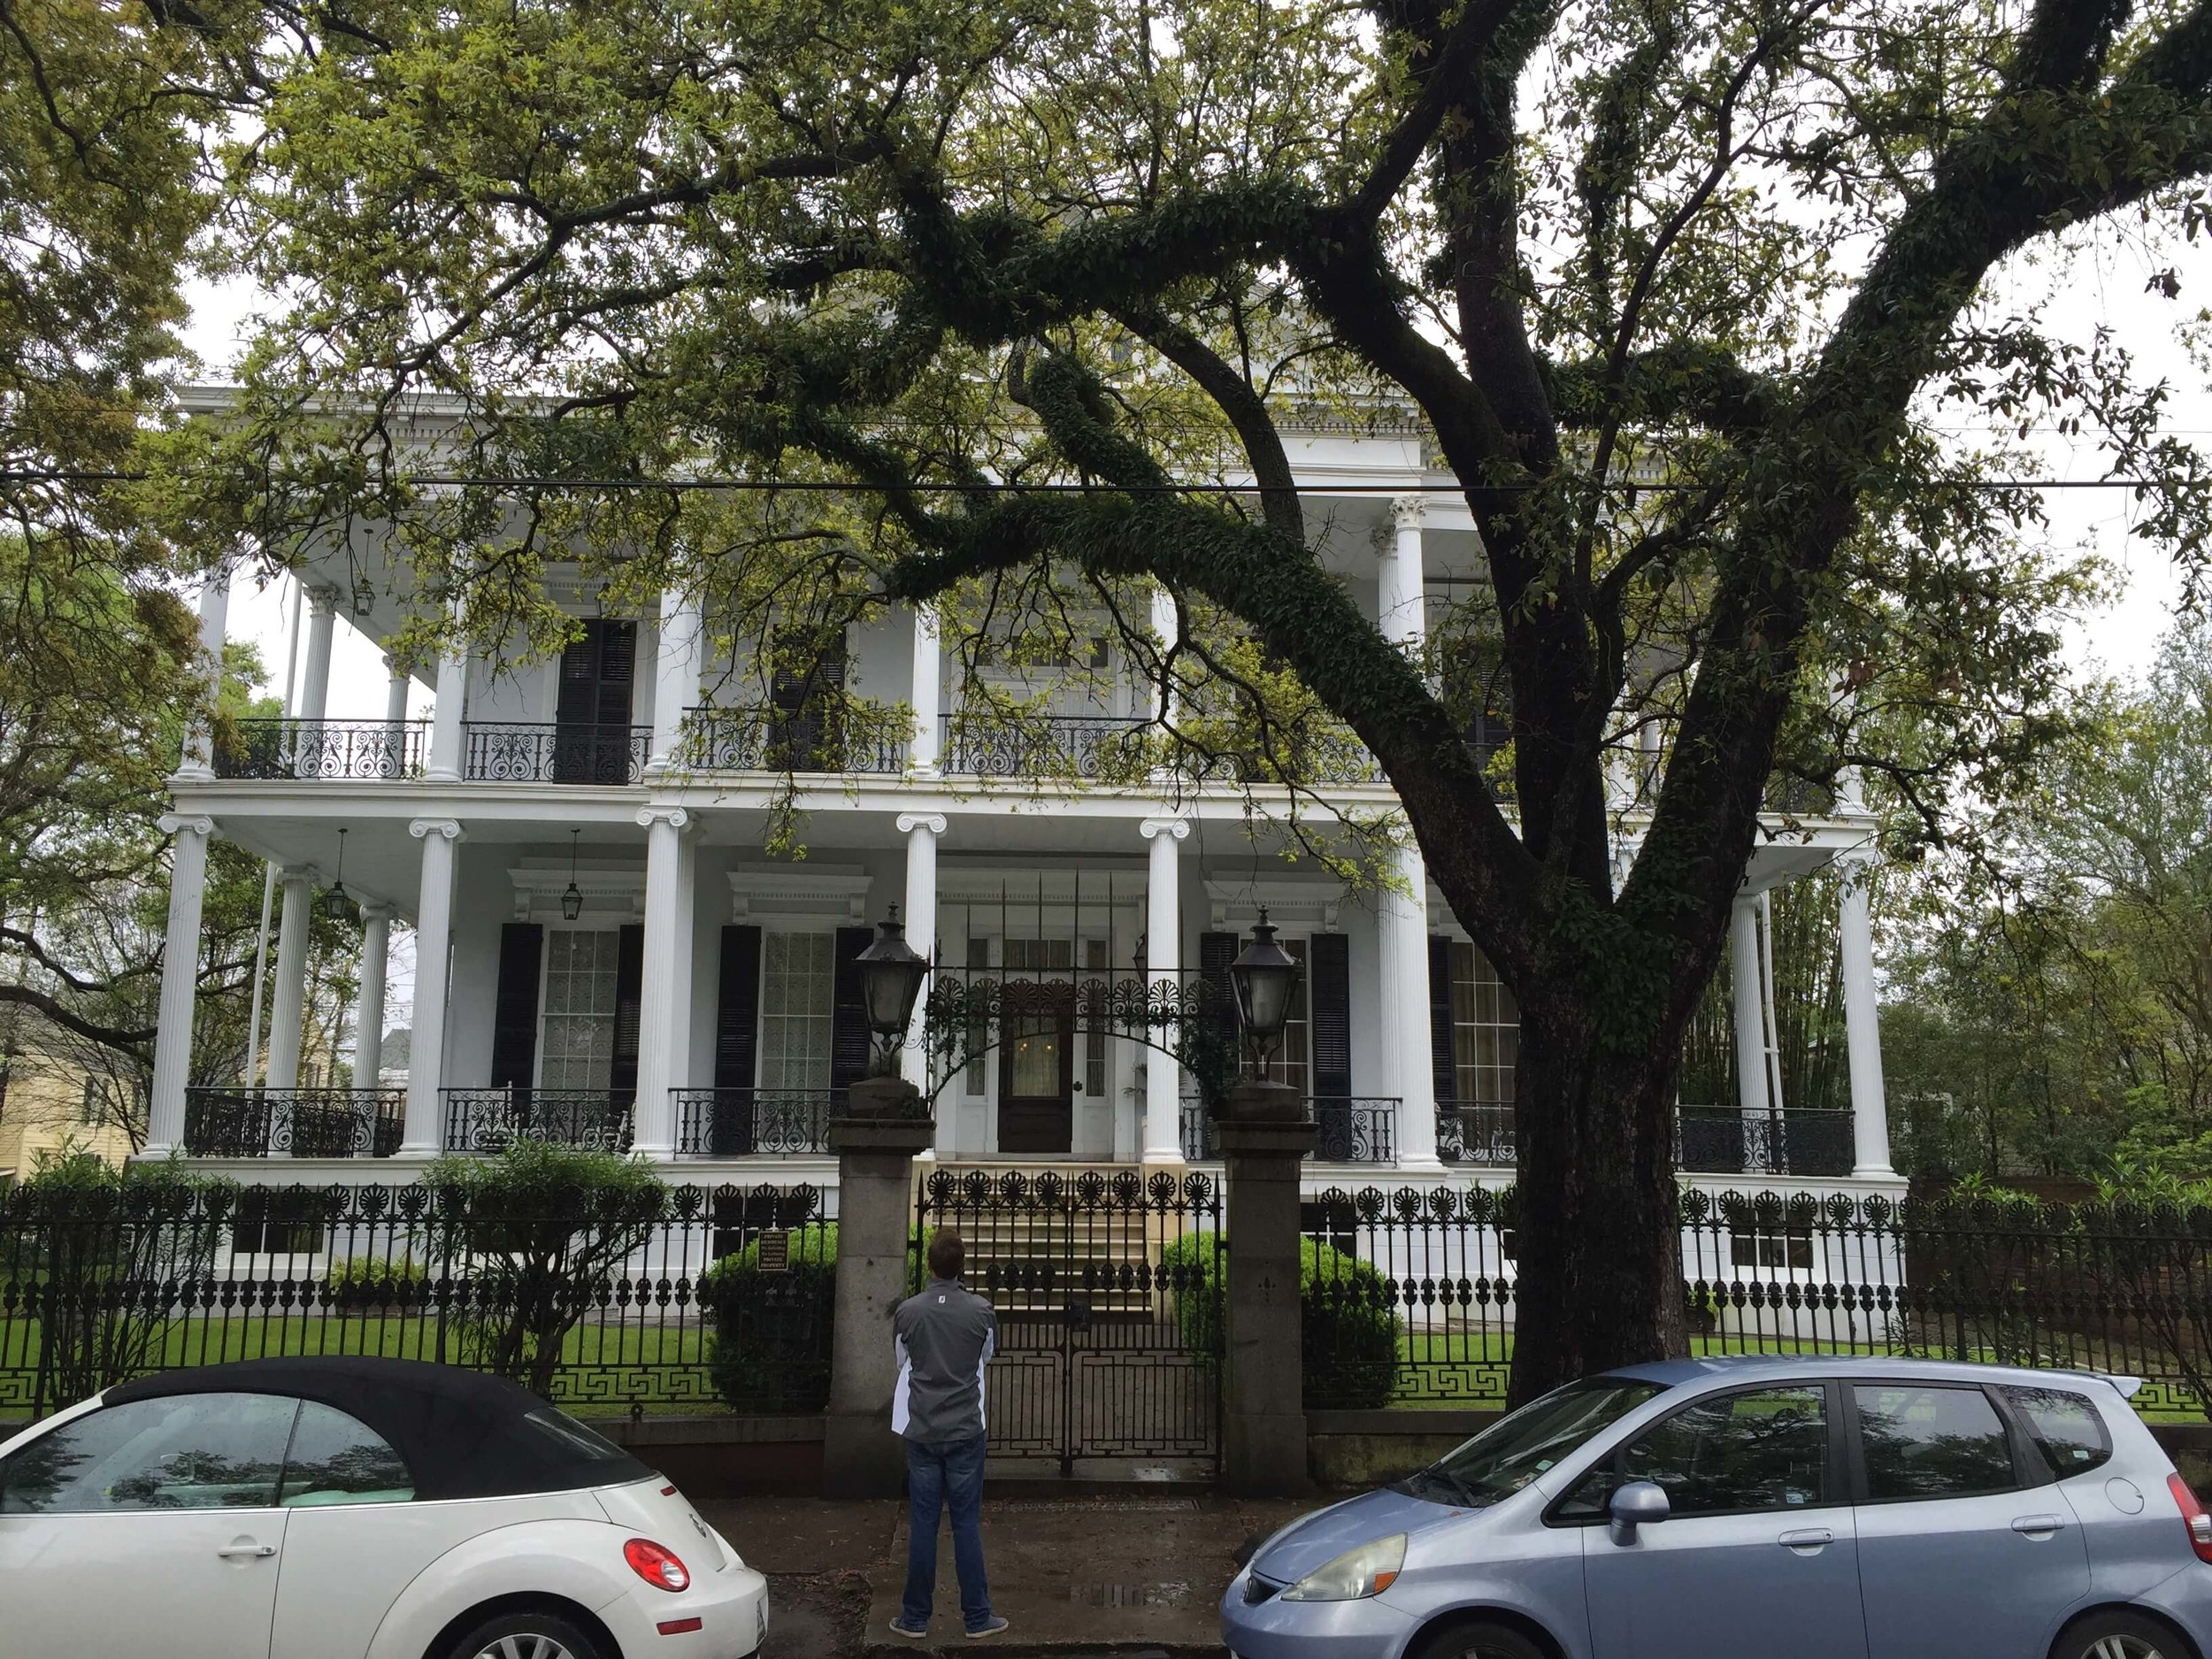 Garden District Mansion in New Orleans